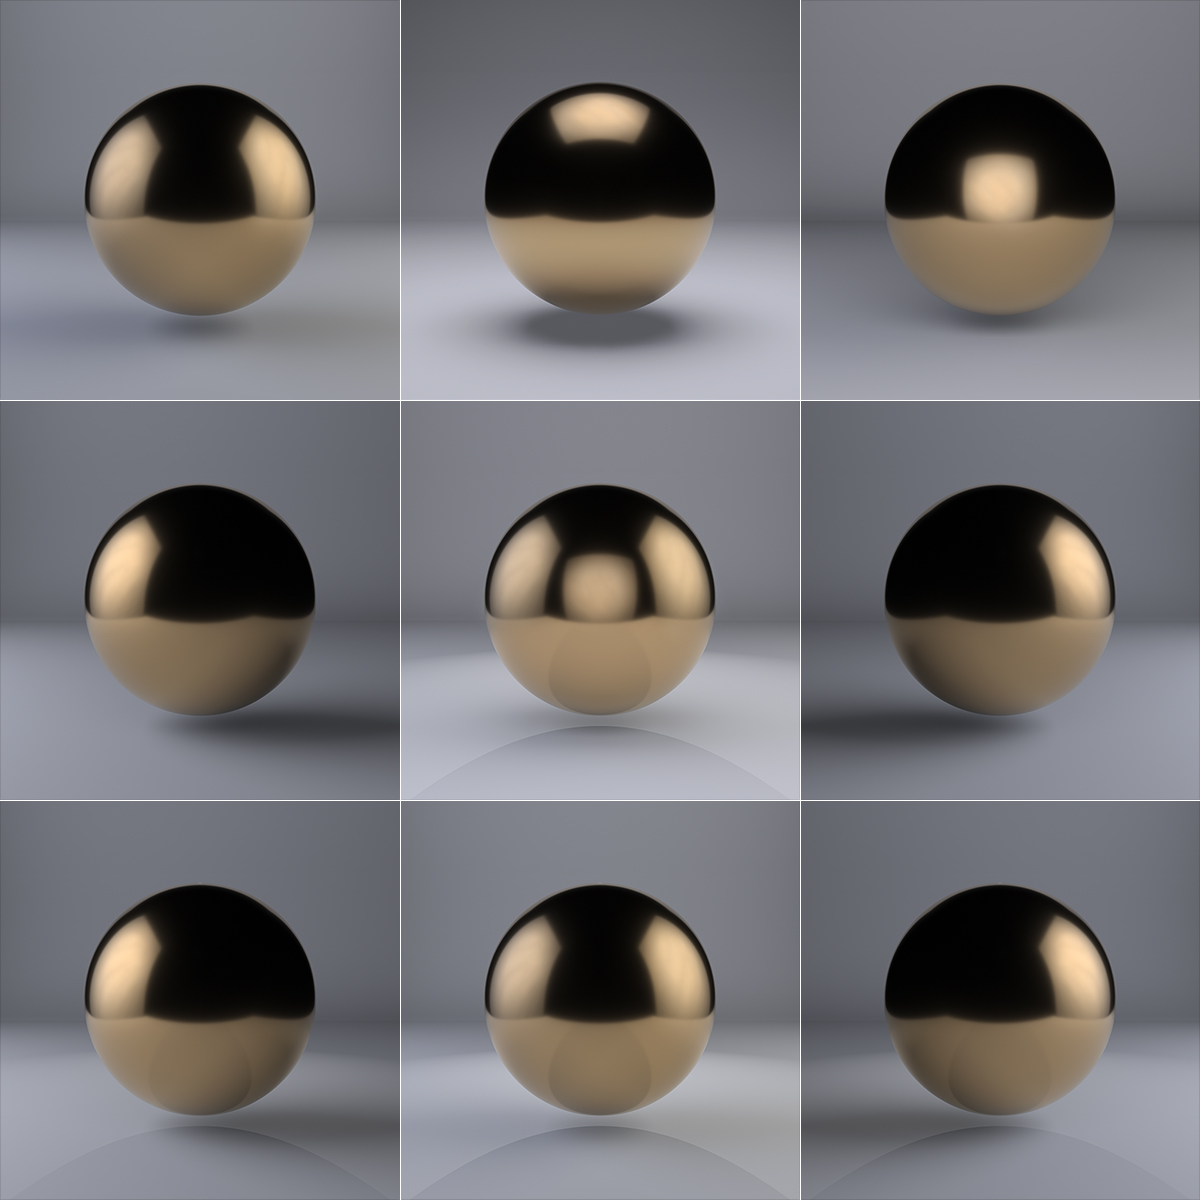 A sphere lit from the top V1 000 1 - 2018 - A sphere lit from the top, four sides and some of their combinations. V1. (Nine Months of Sol Lewitt's Life)